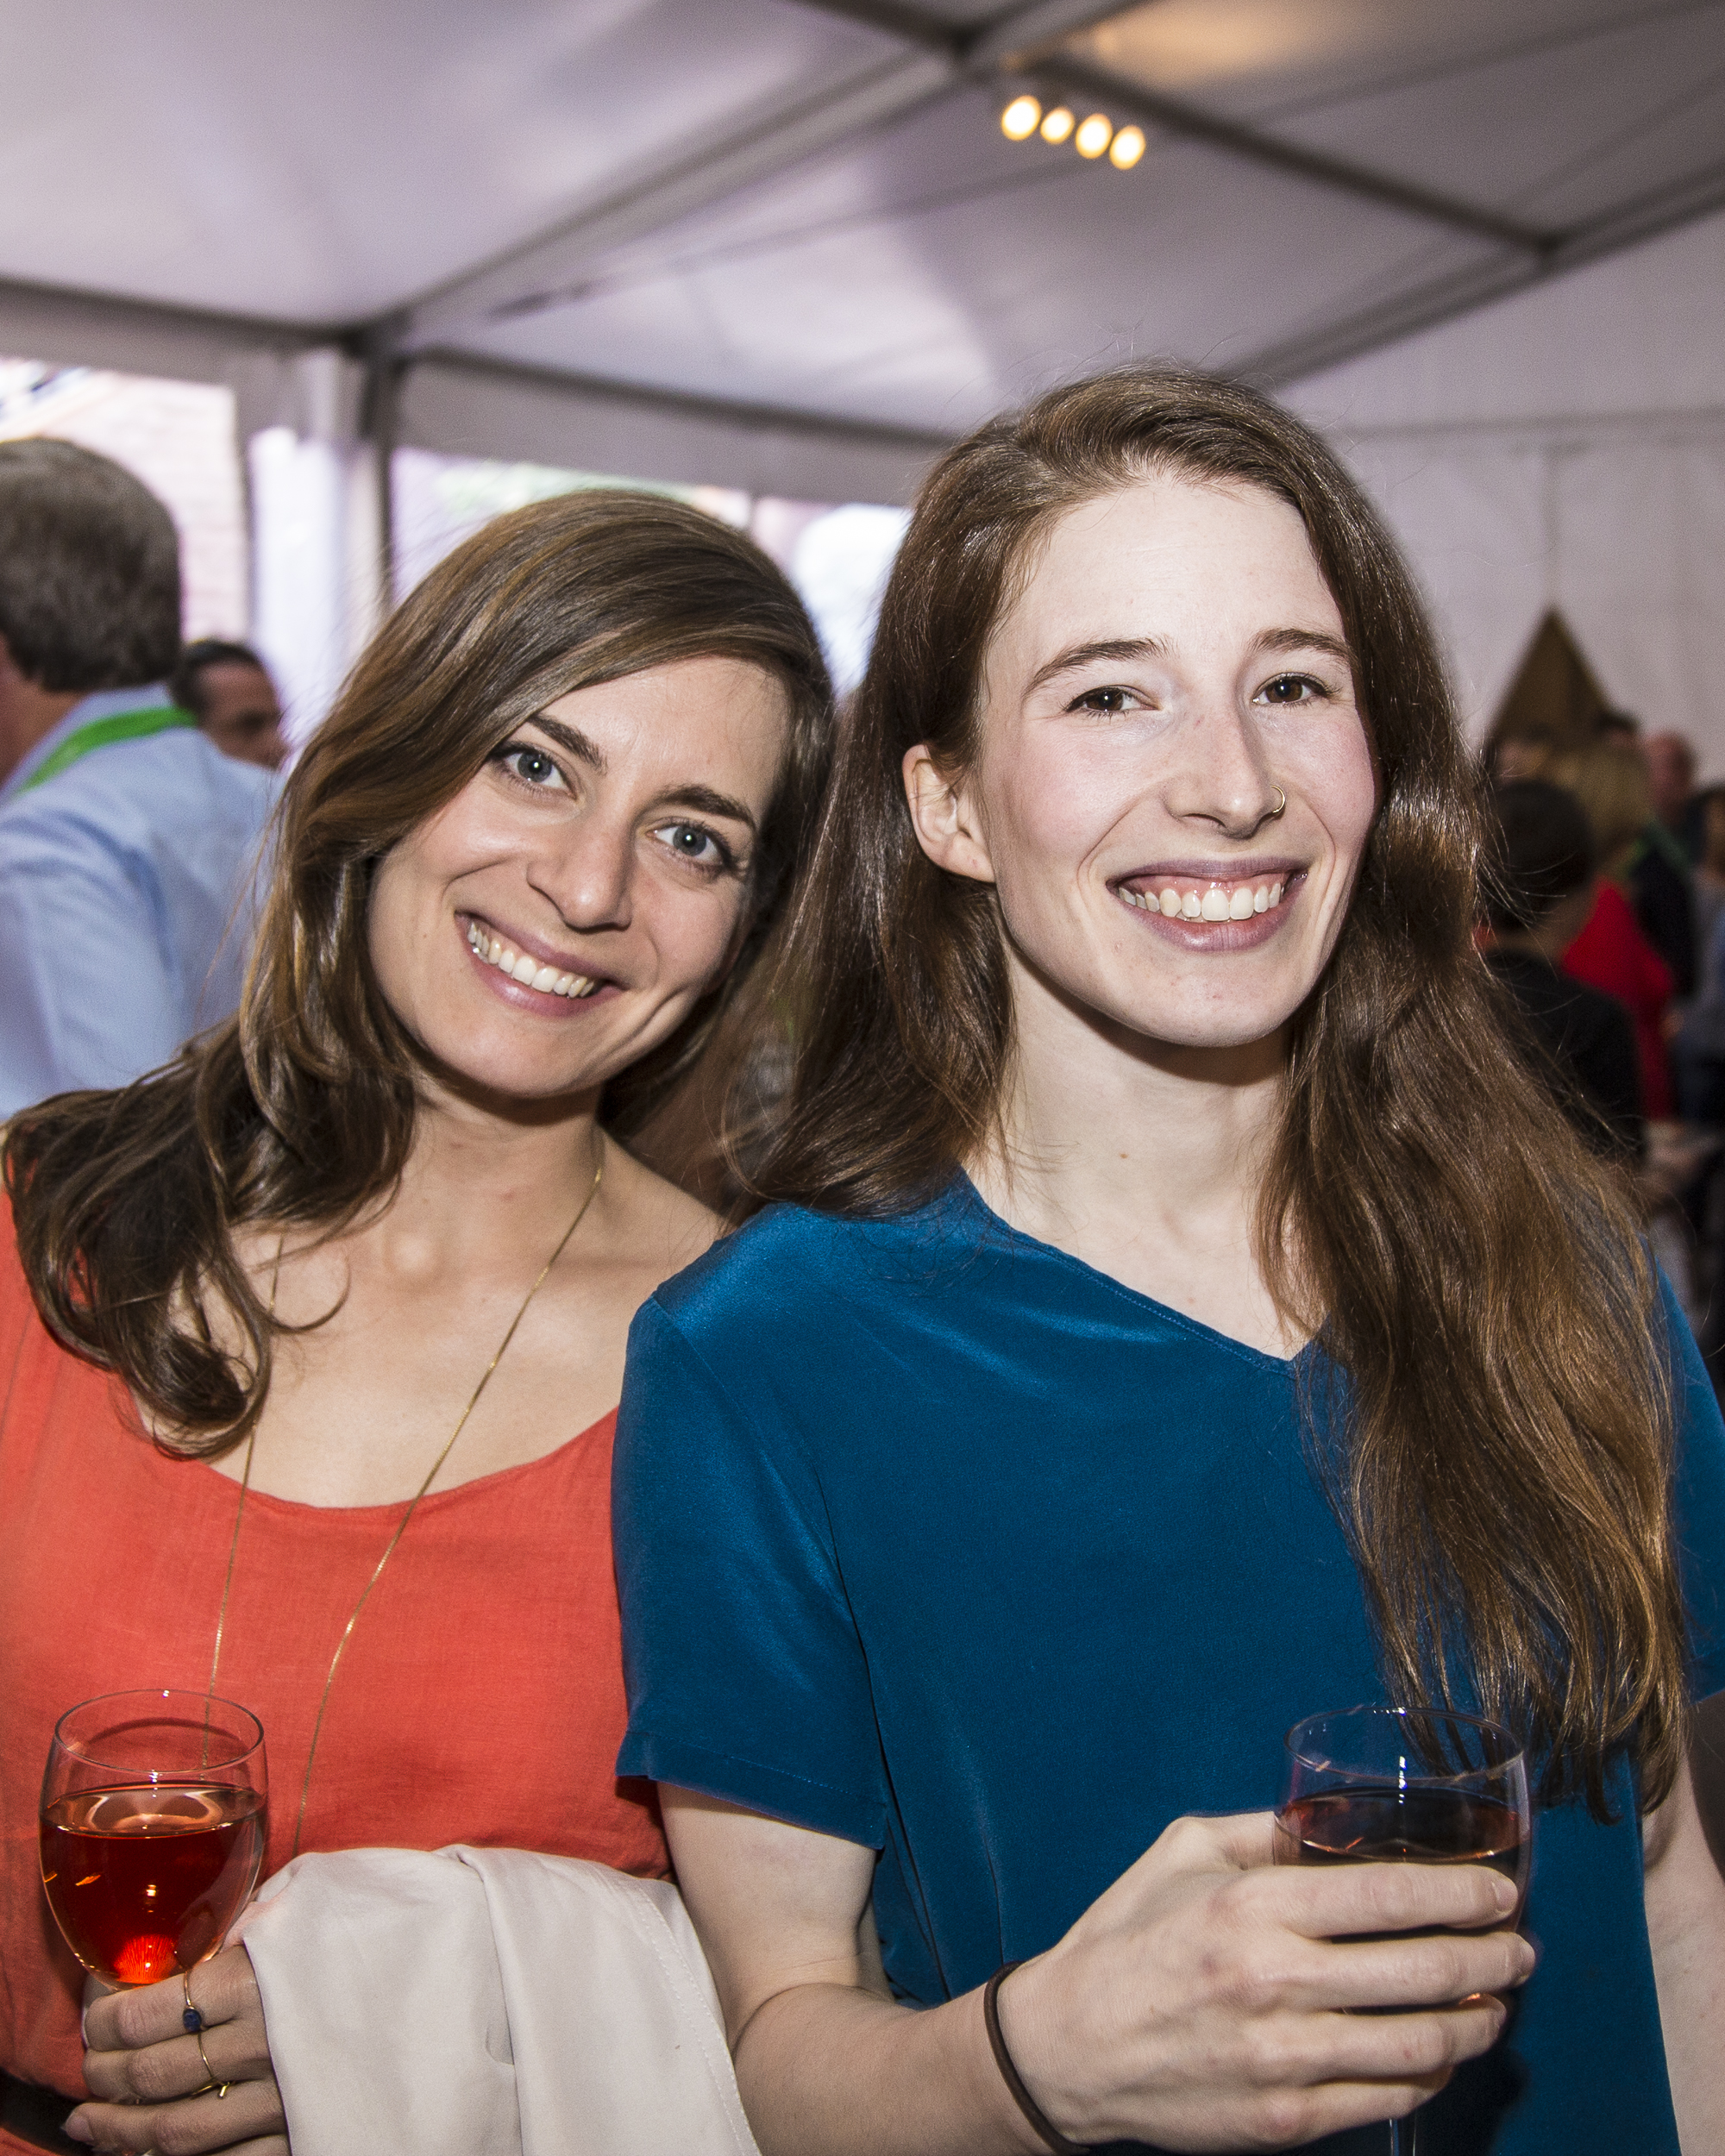 Best New Chefs 2017 Sara Kramer and Sarah Hymanson of Kismet attend the Food & Wine Classic in Aspen welcome reception